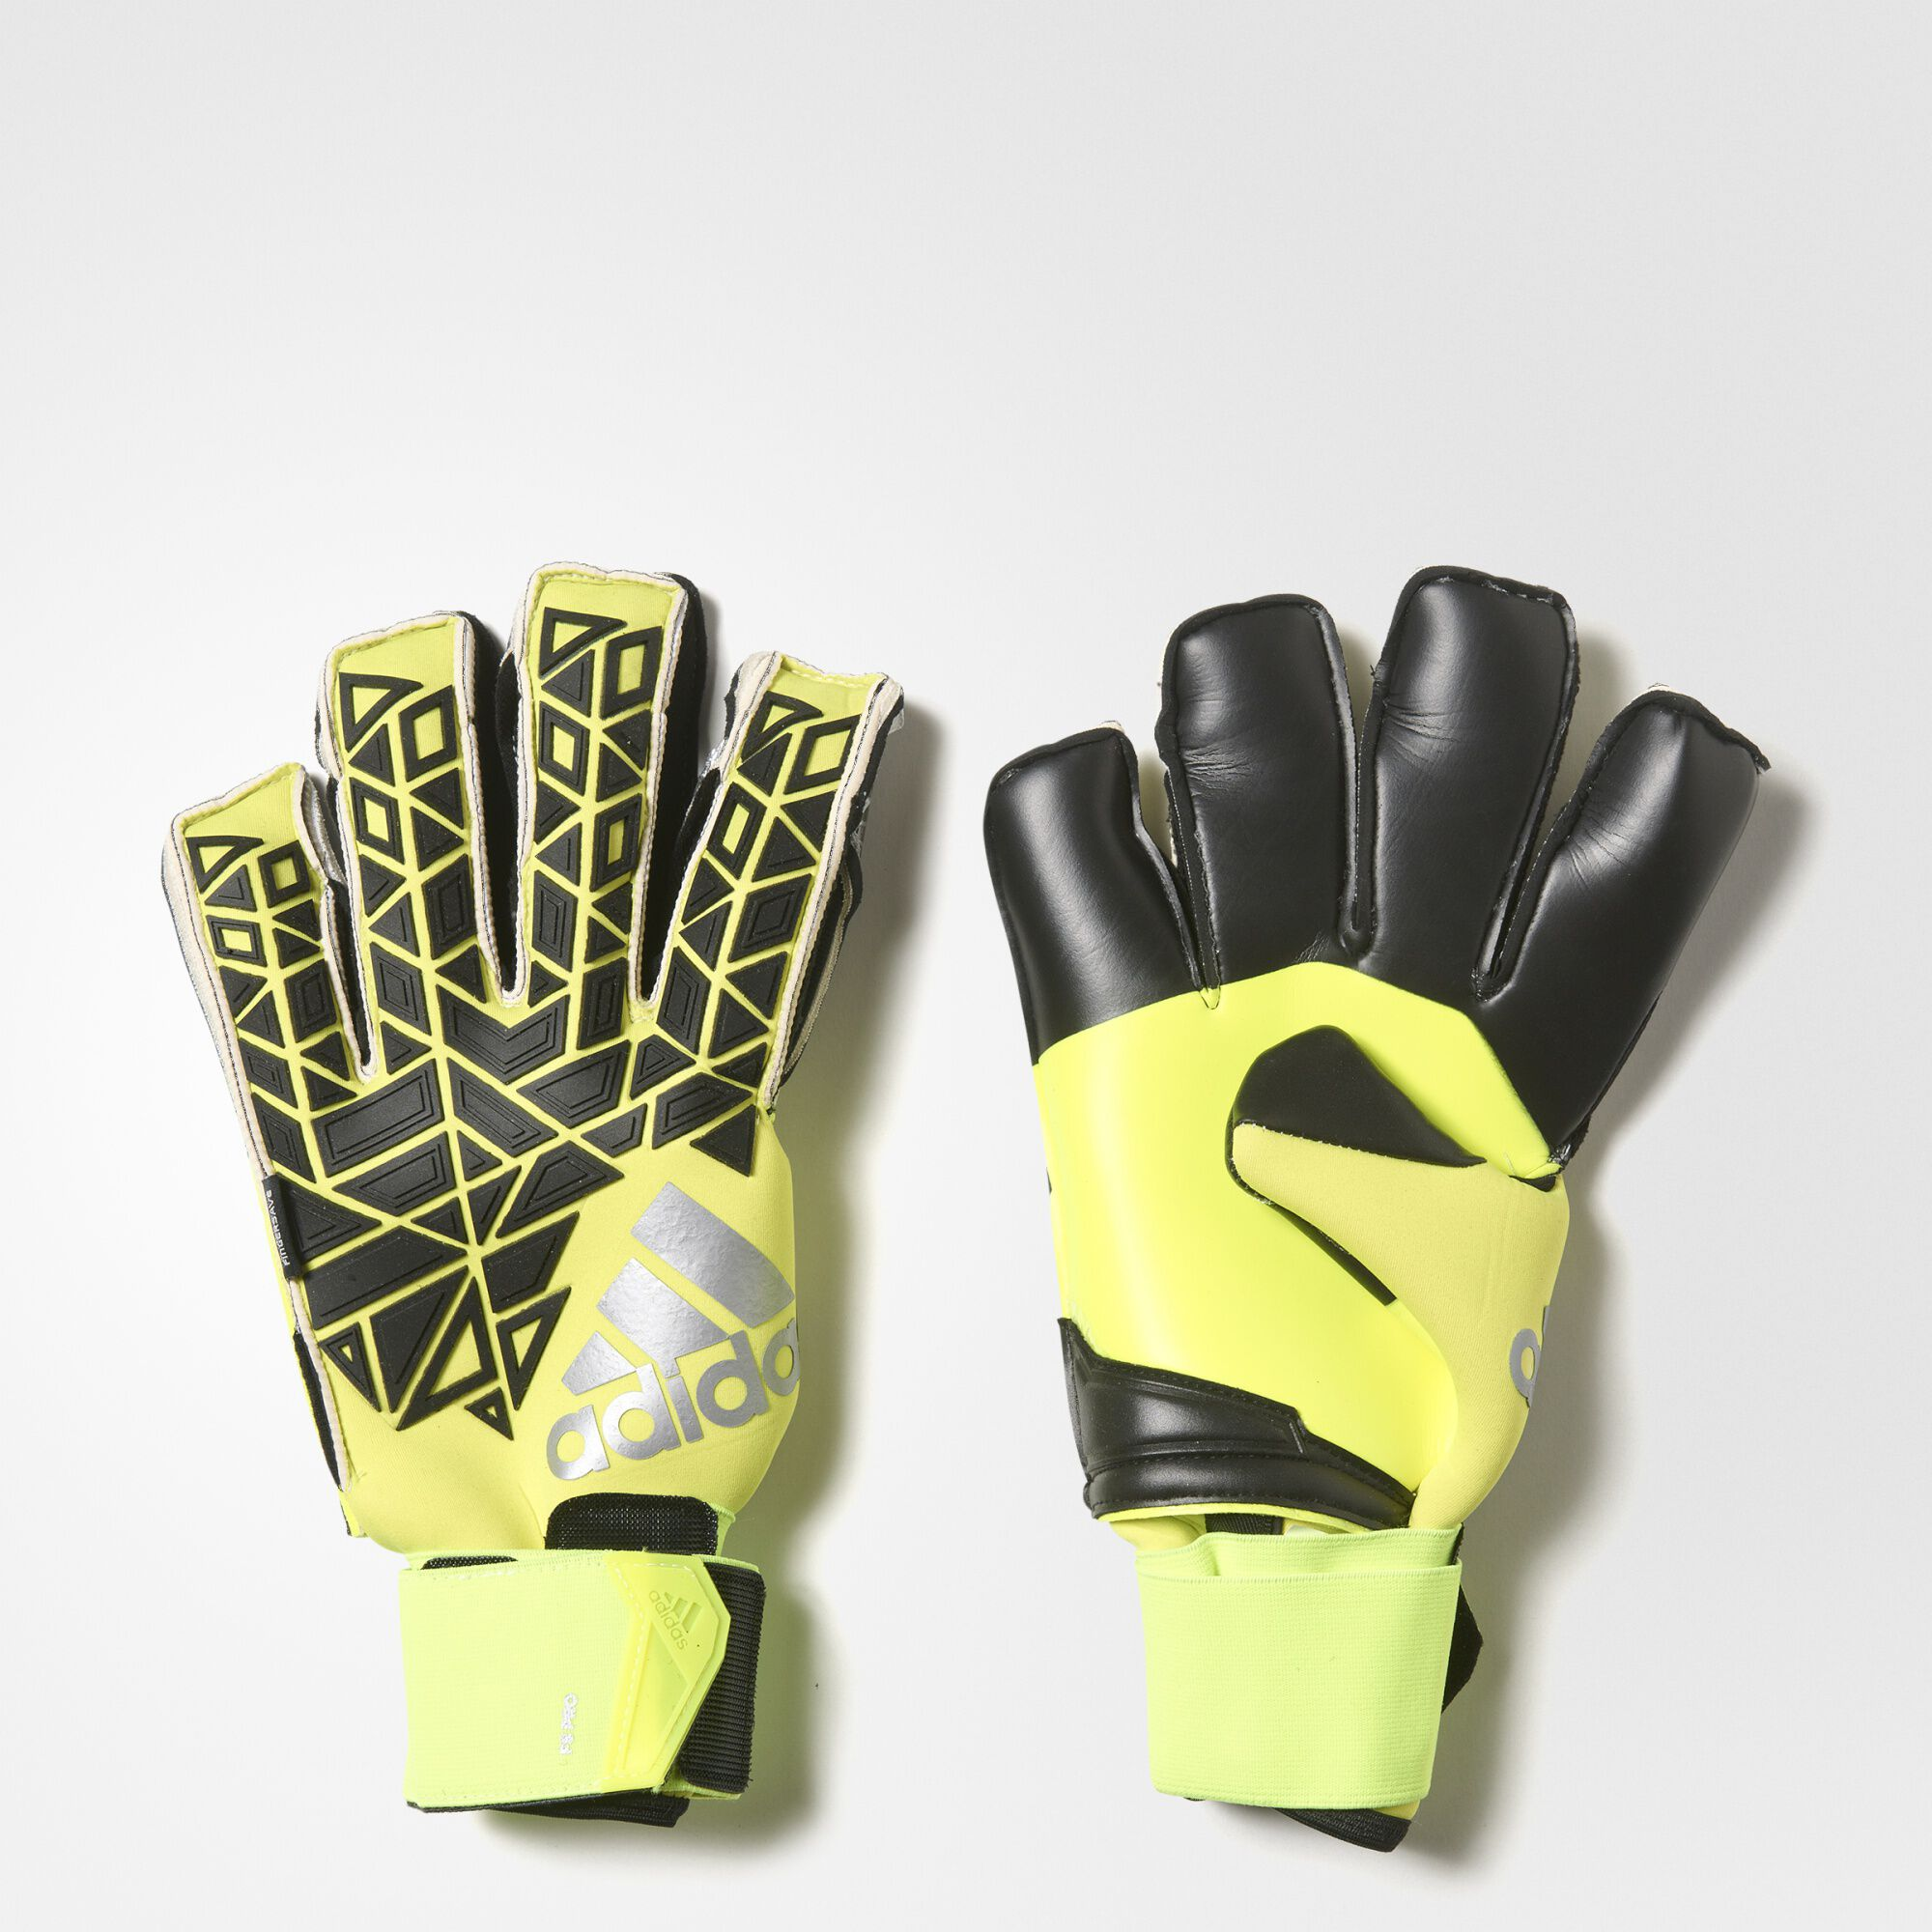 on sale 62e86 9d3bb ... adidas ace fingersave pro goalkeeper gloves solar yellow black semi  solar yellow ap6991 womens nike air max 95 red yellow mercadolivre ...